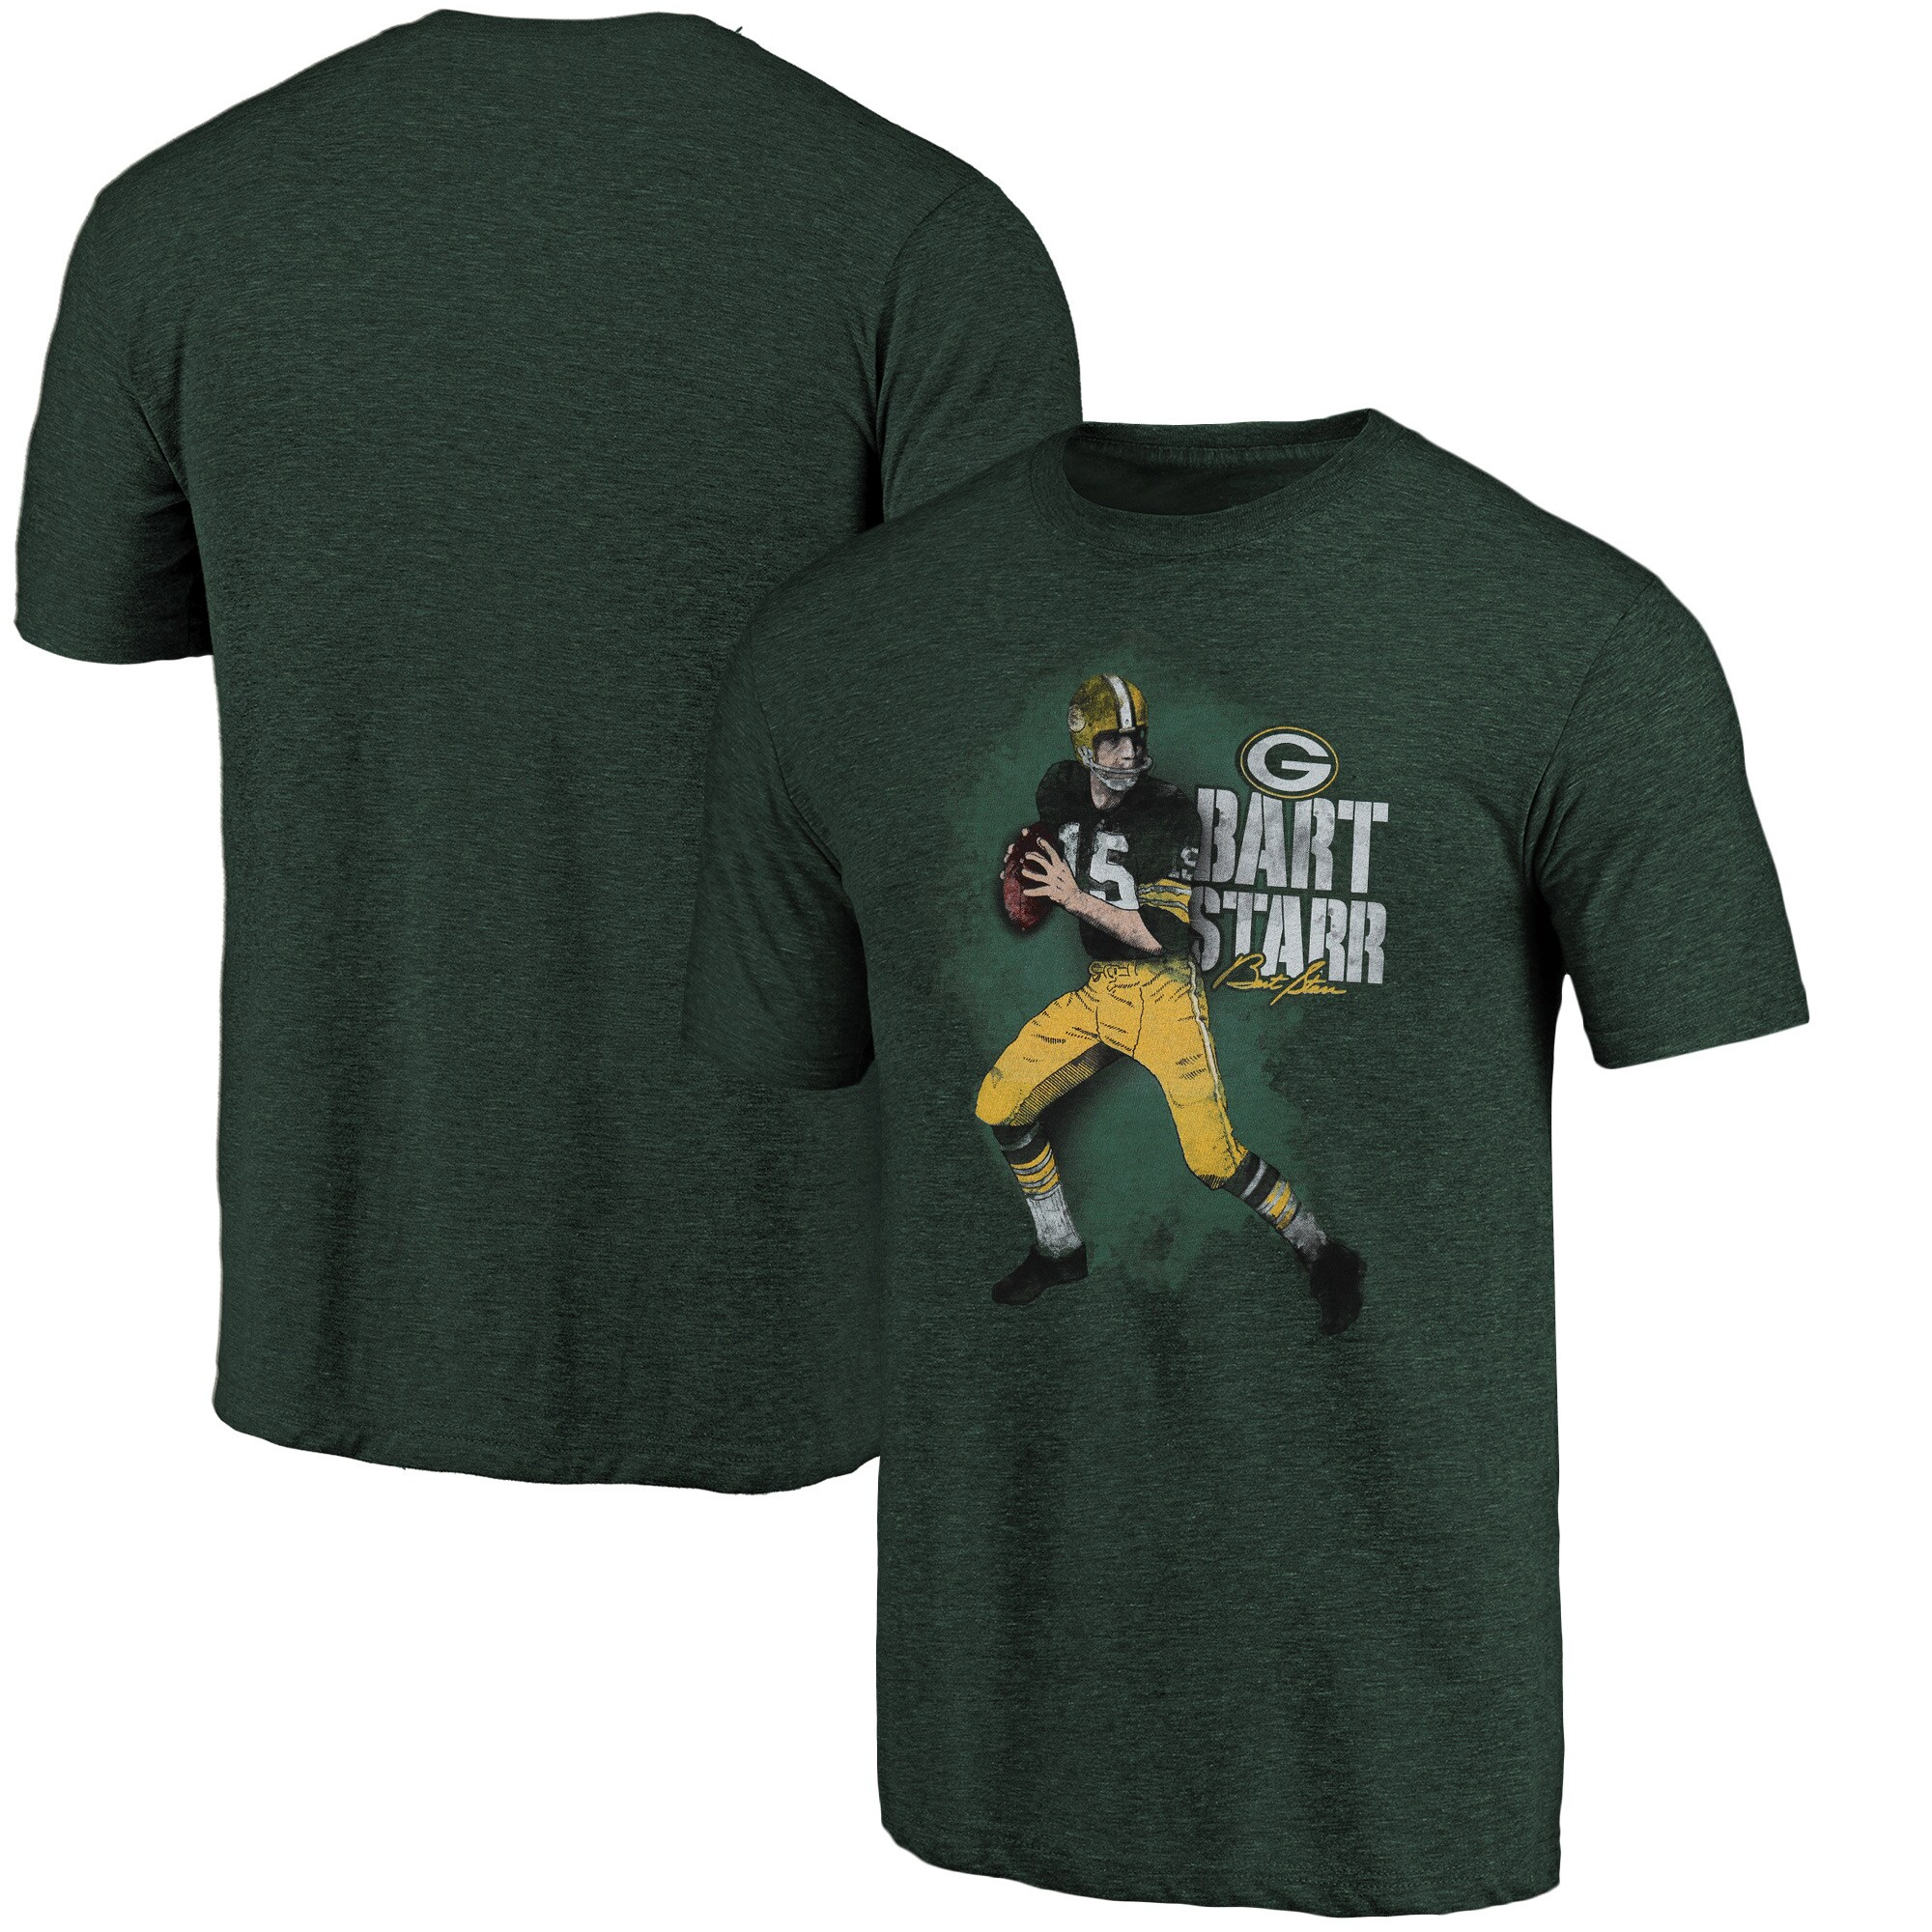 Bart Starr Green Bay Packers NFL Pro Line Retired Player Tri-Blend T-Shirt - Green